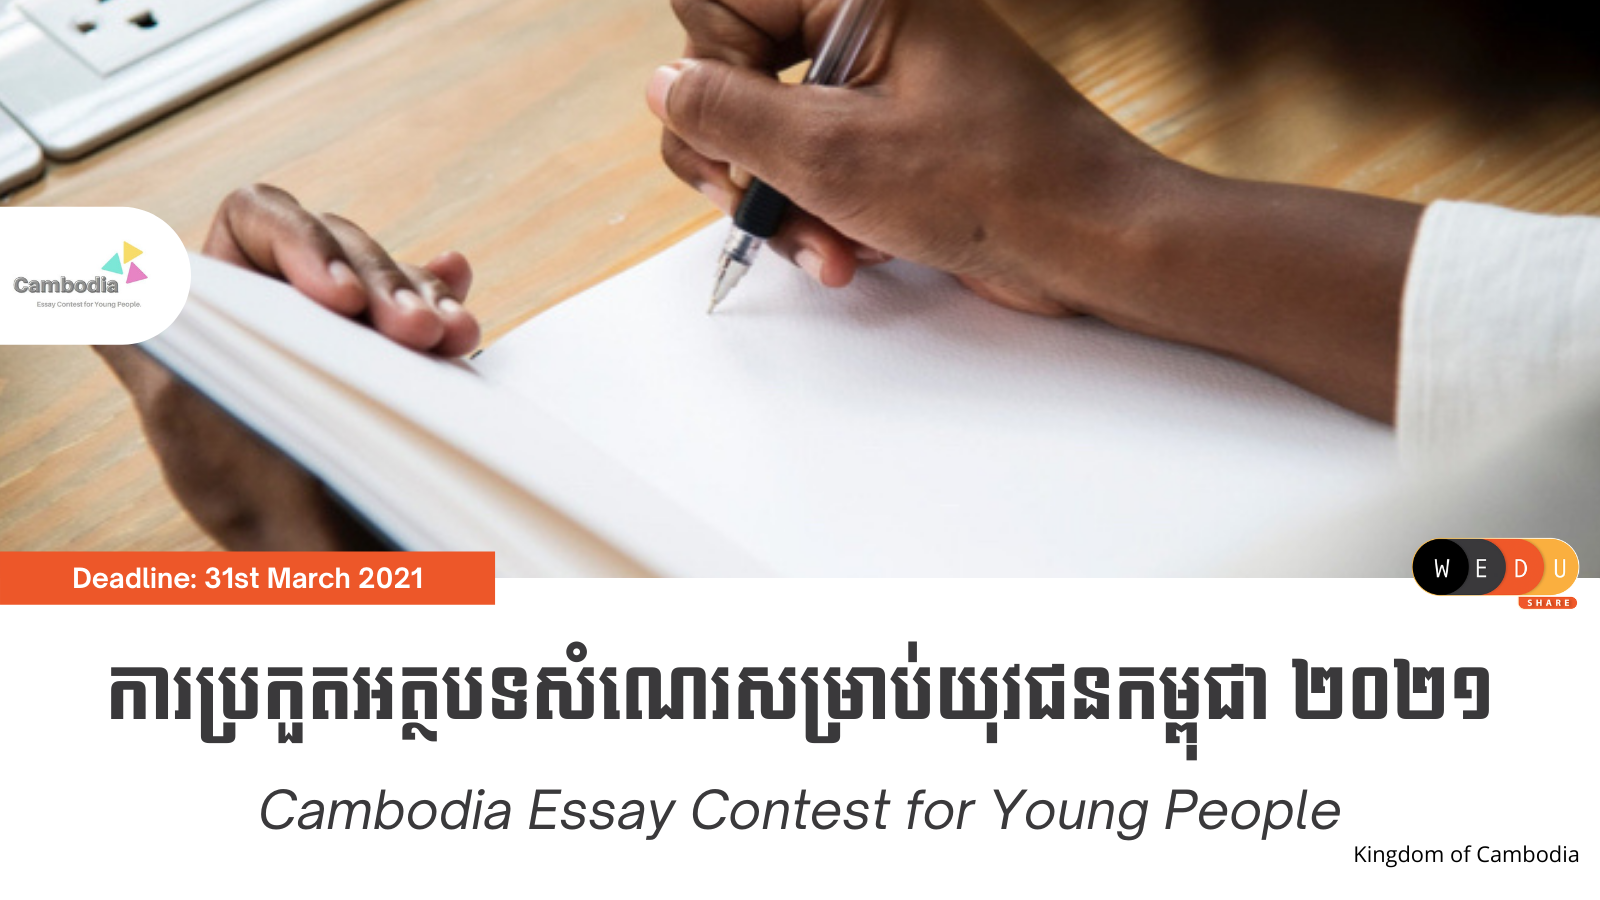 Cambodia Essay Contest for Young People